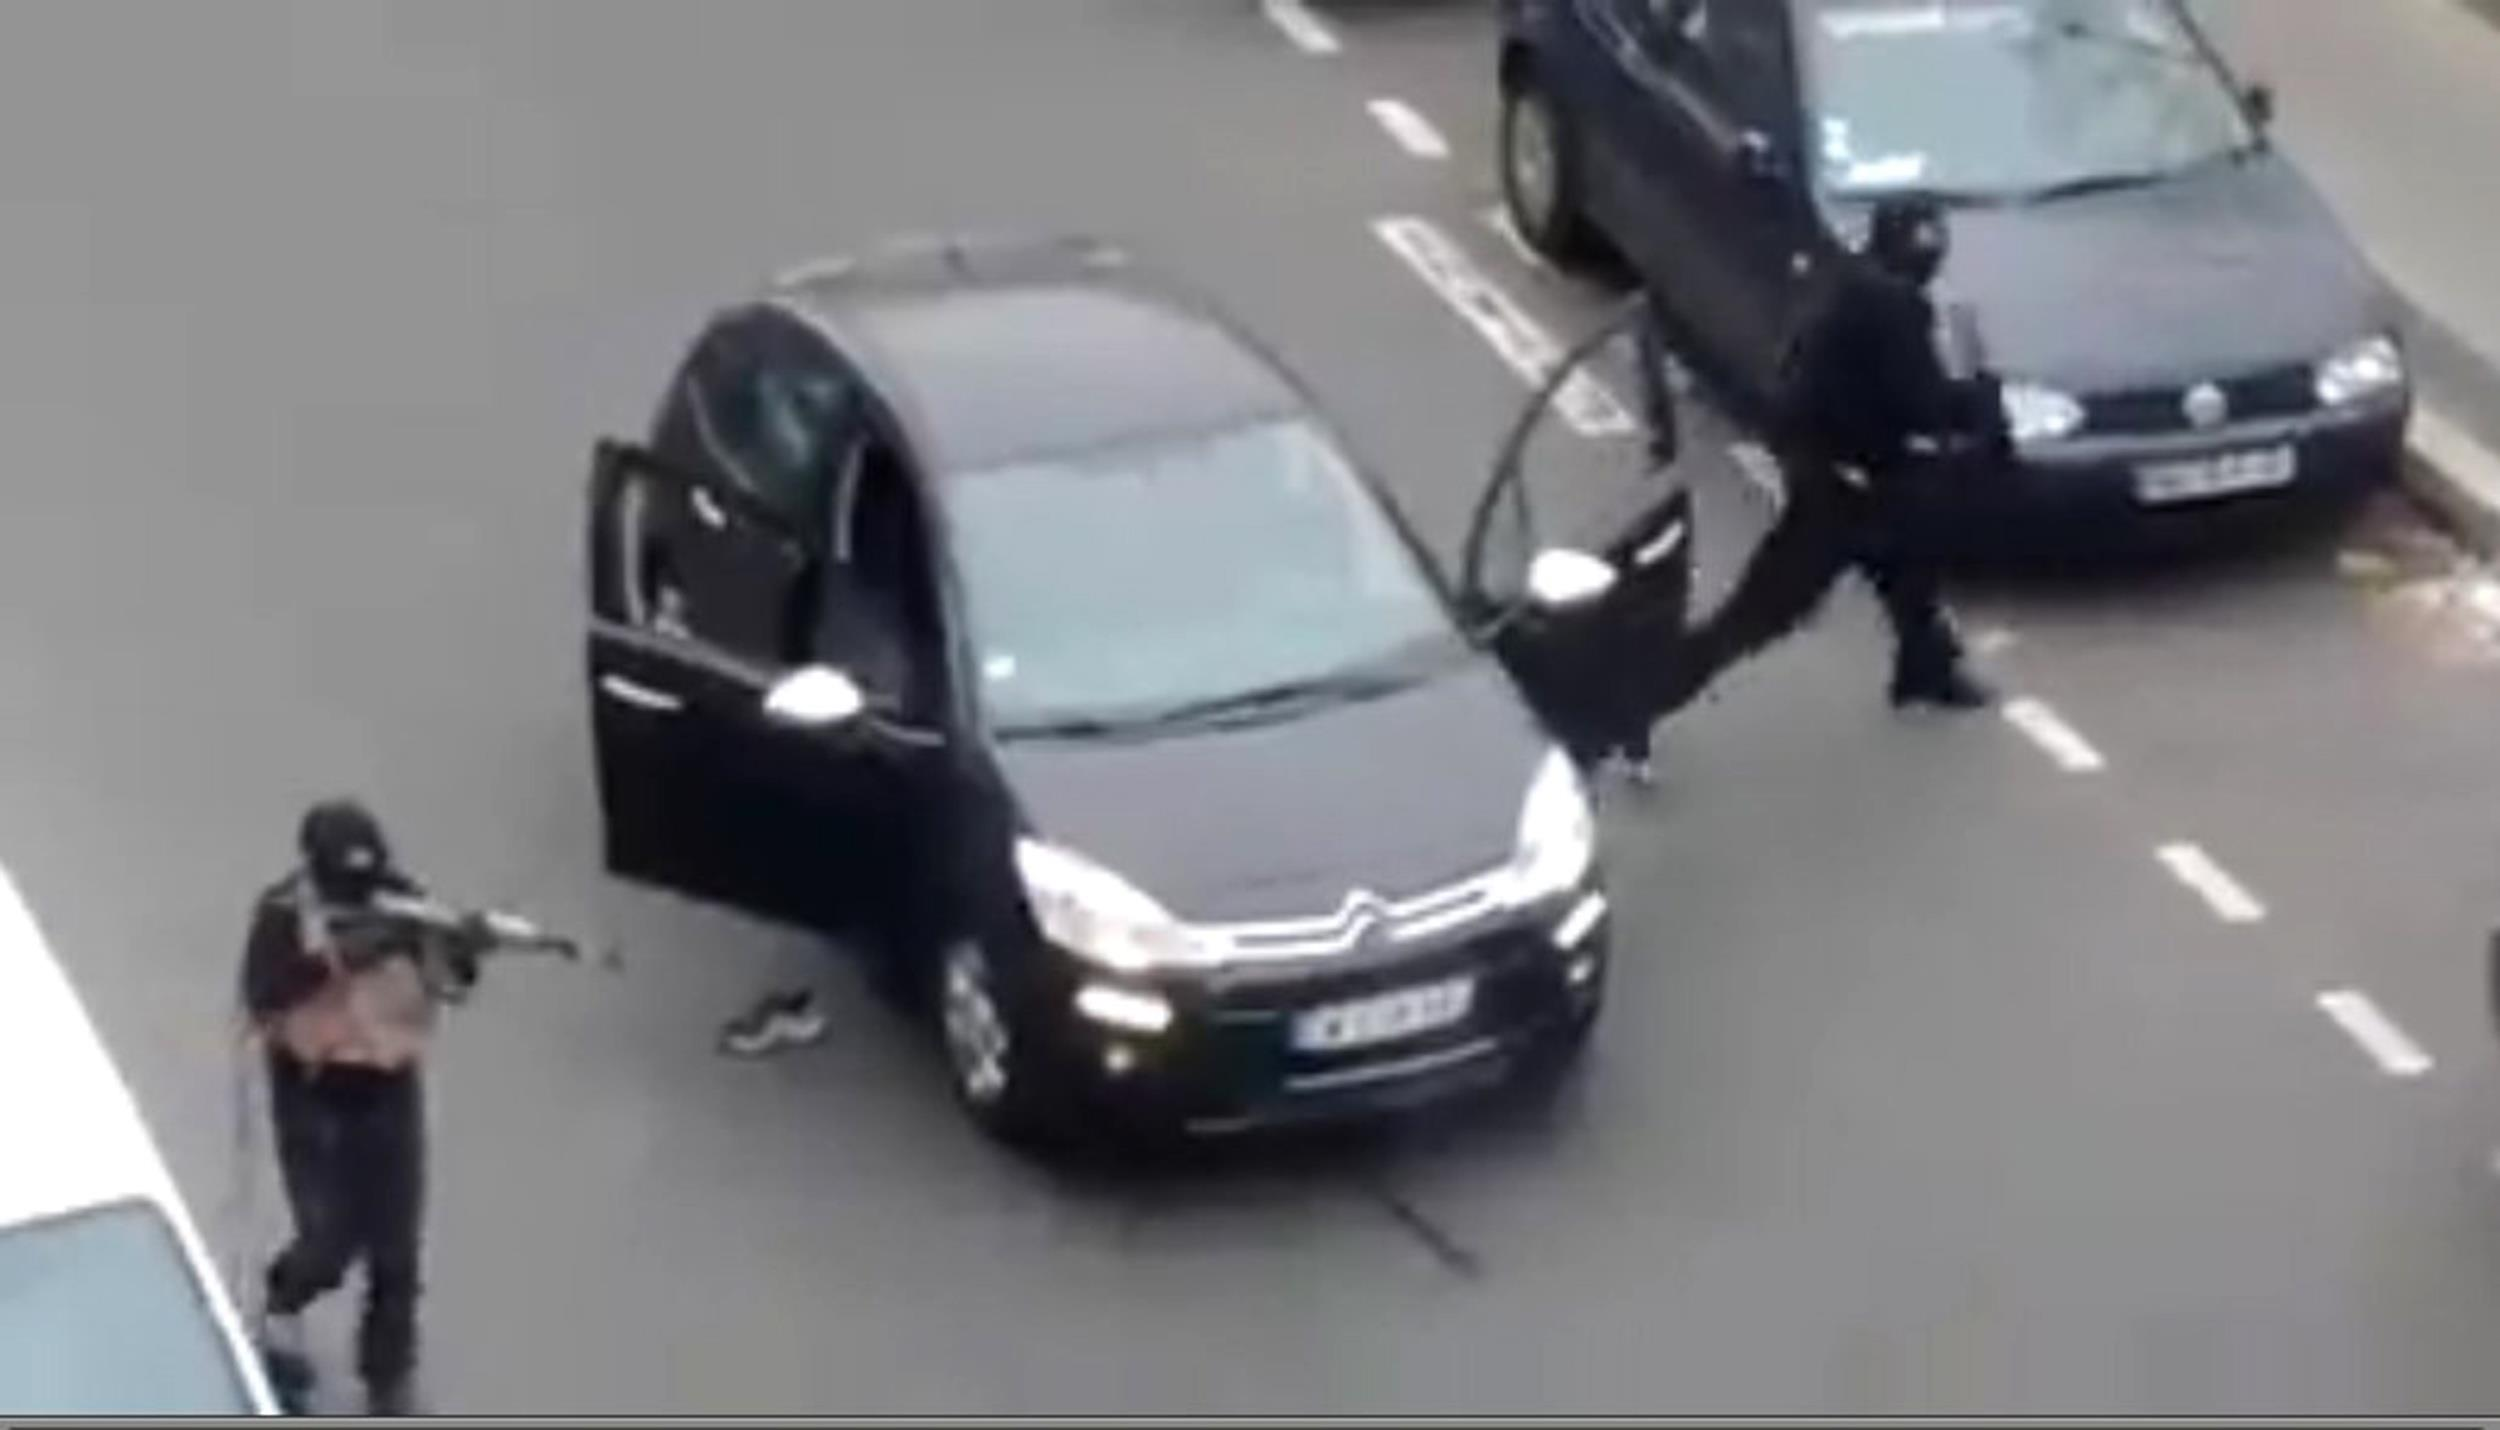 Charlie Hebdo Shooting 12 Killed At Muhammad Cartoons Magazine In Paris